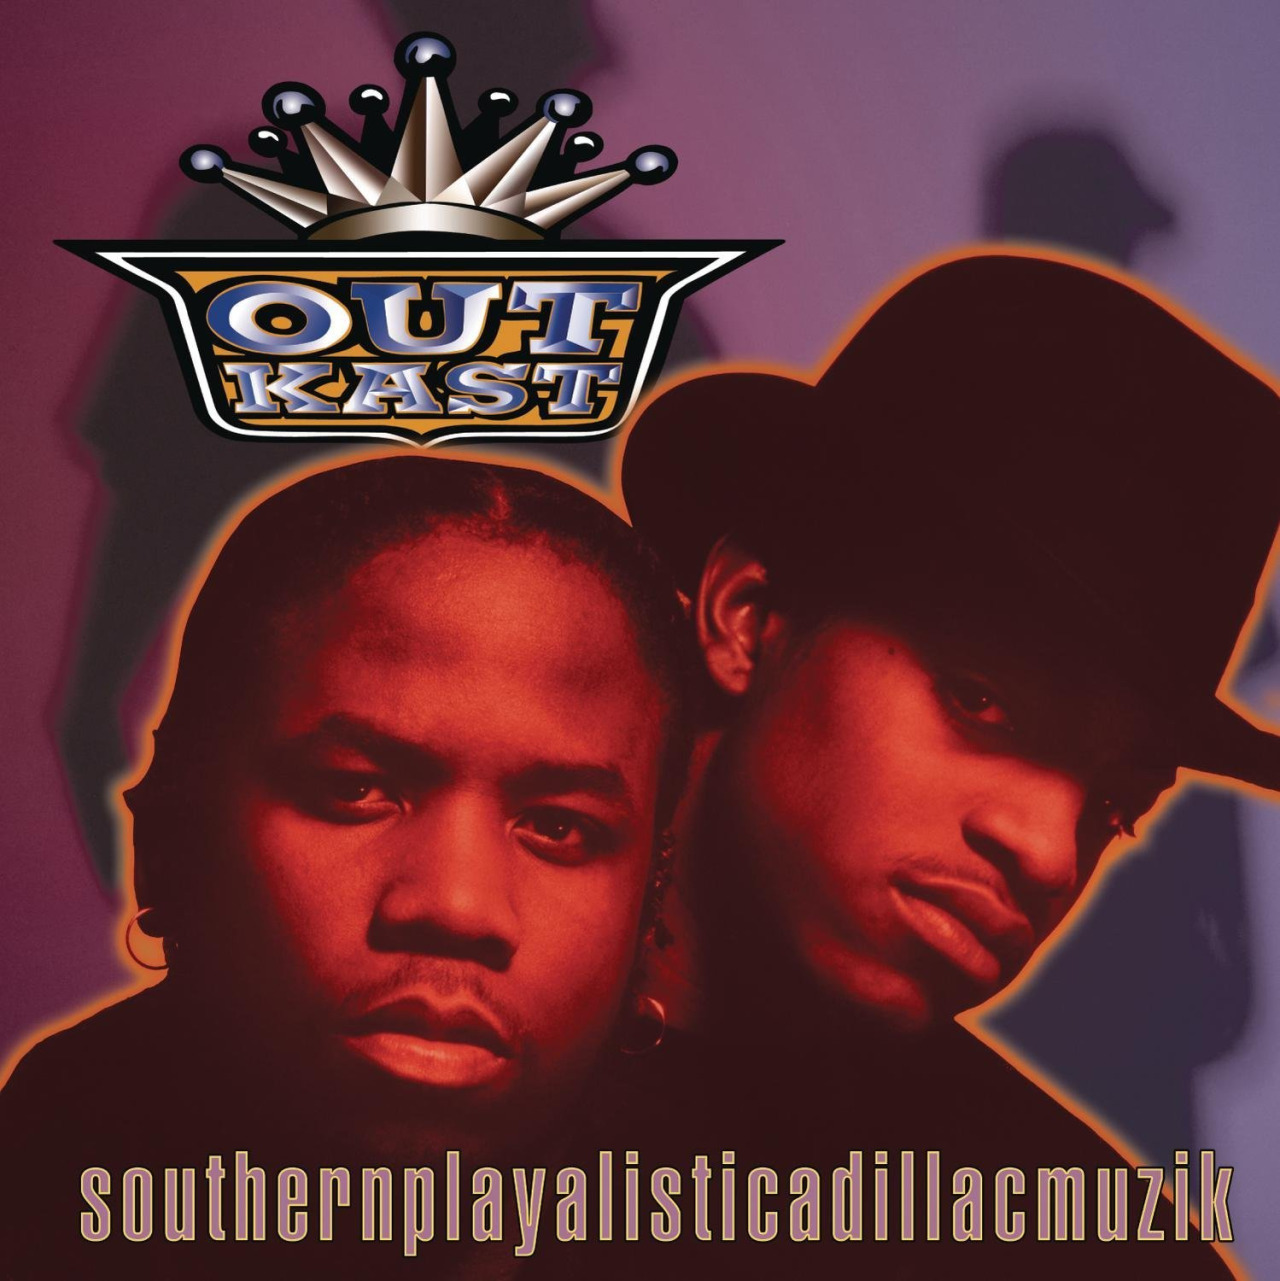 The Source |Today in Hip-Hop History: Outkast Drops Their Debut Album 'Southernplayalisticadillacmuzik' 27 Years Ago